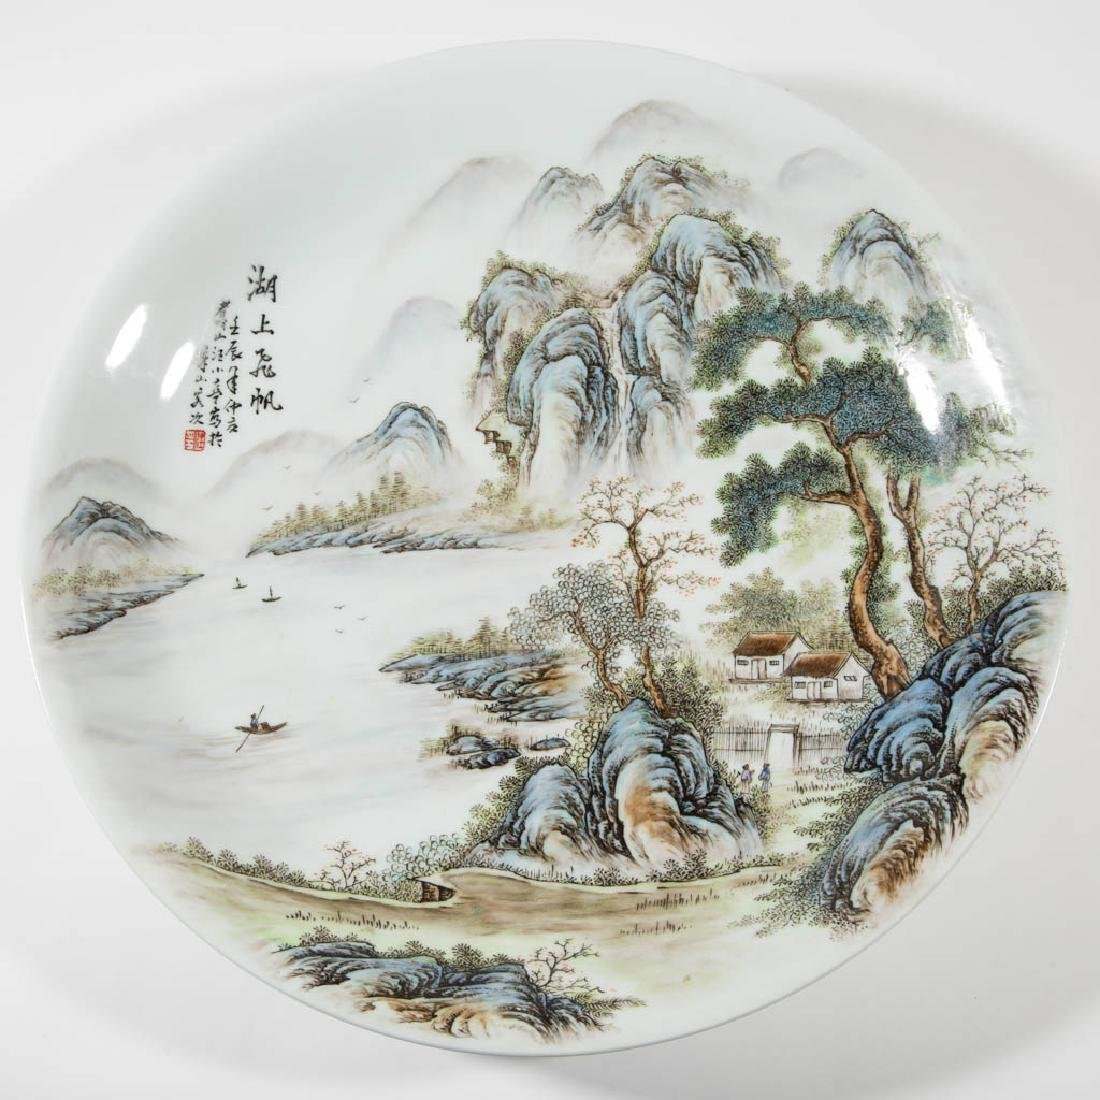 CHINESE EXPORT REPUBLICAN-STYLE LARGE PORCELAIN CHARGER